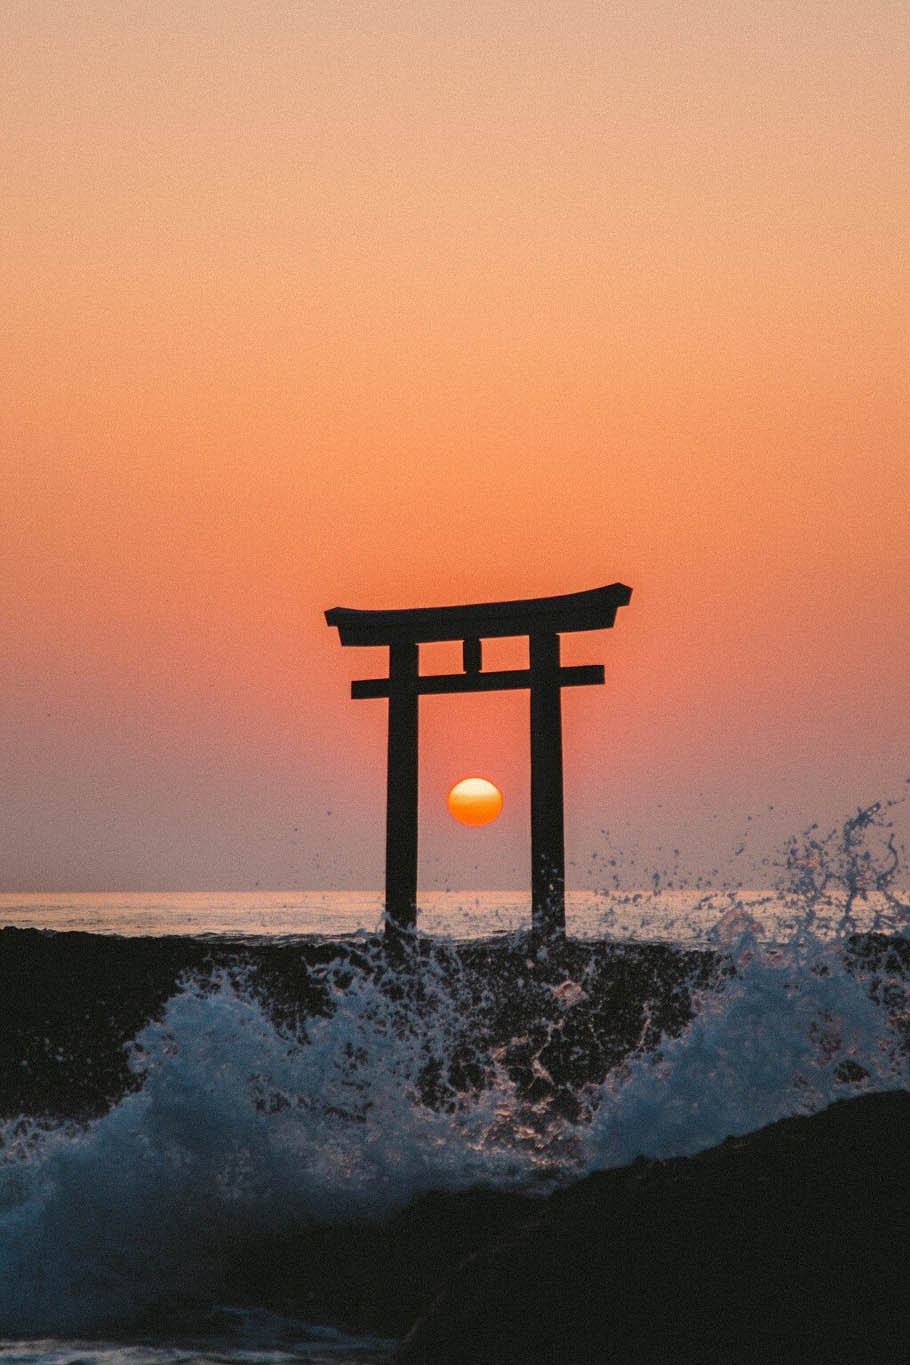 beautiful japan,yasuhiro kuratarite  [rey-dee-eyt; rey-dee-it, -eyt]  verb  1. to extend,spread,or move like rays or radii from a center.  2. to emit rays,as of light or heat;irradiate.  3. to issue or proceed in rays.  4. (of persons)to project or glow with cheerfulness,joy,etc.  5. to emit in rays;disseminate,as from a center.  6. (of persons)to project (joy,goodwill,etc.).  adjective  7. radiating from a center.  8. having rays extending from a central point or part:  9. radiating symmetrically.